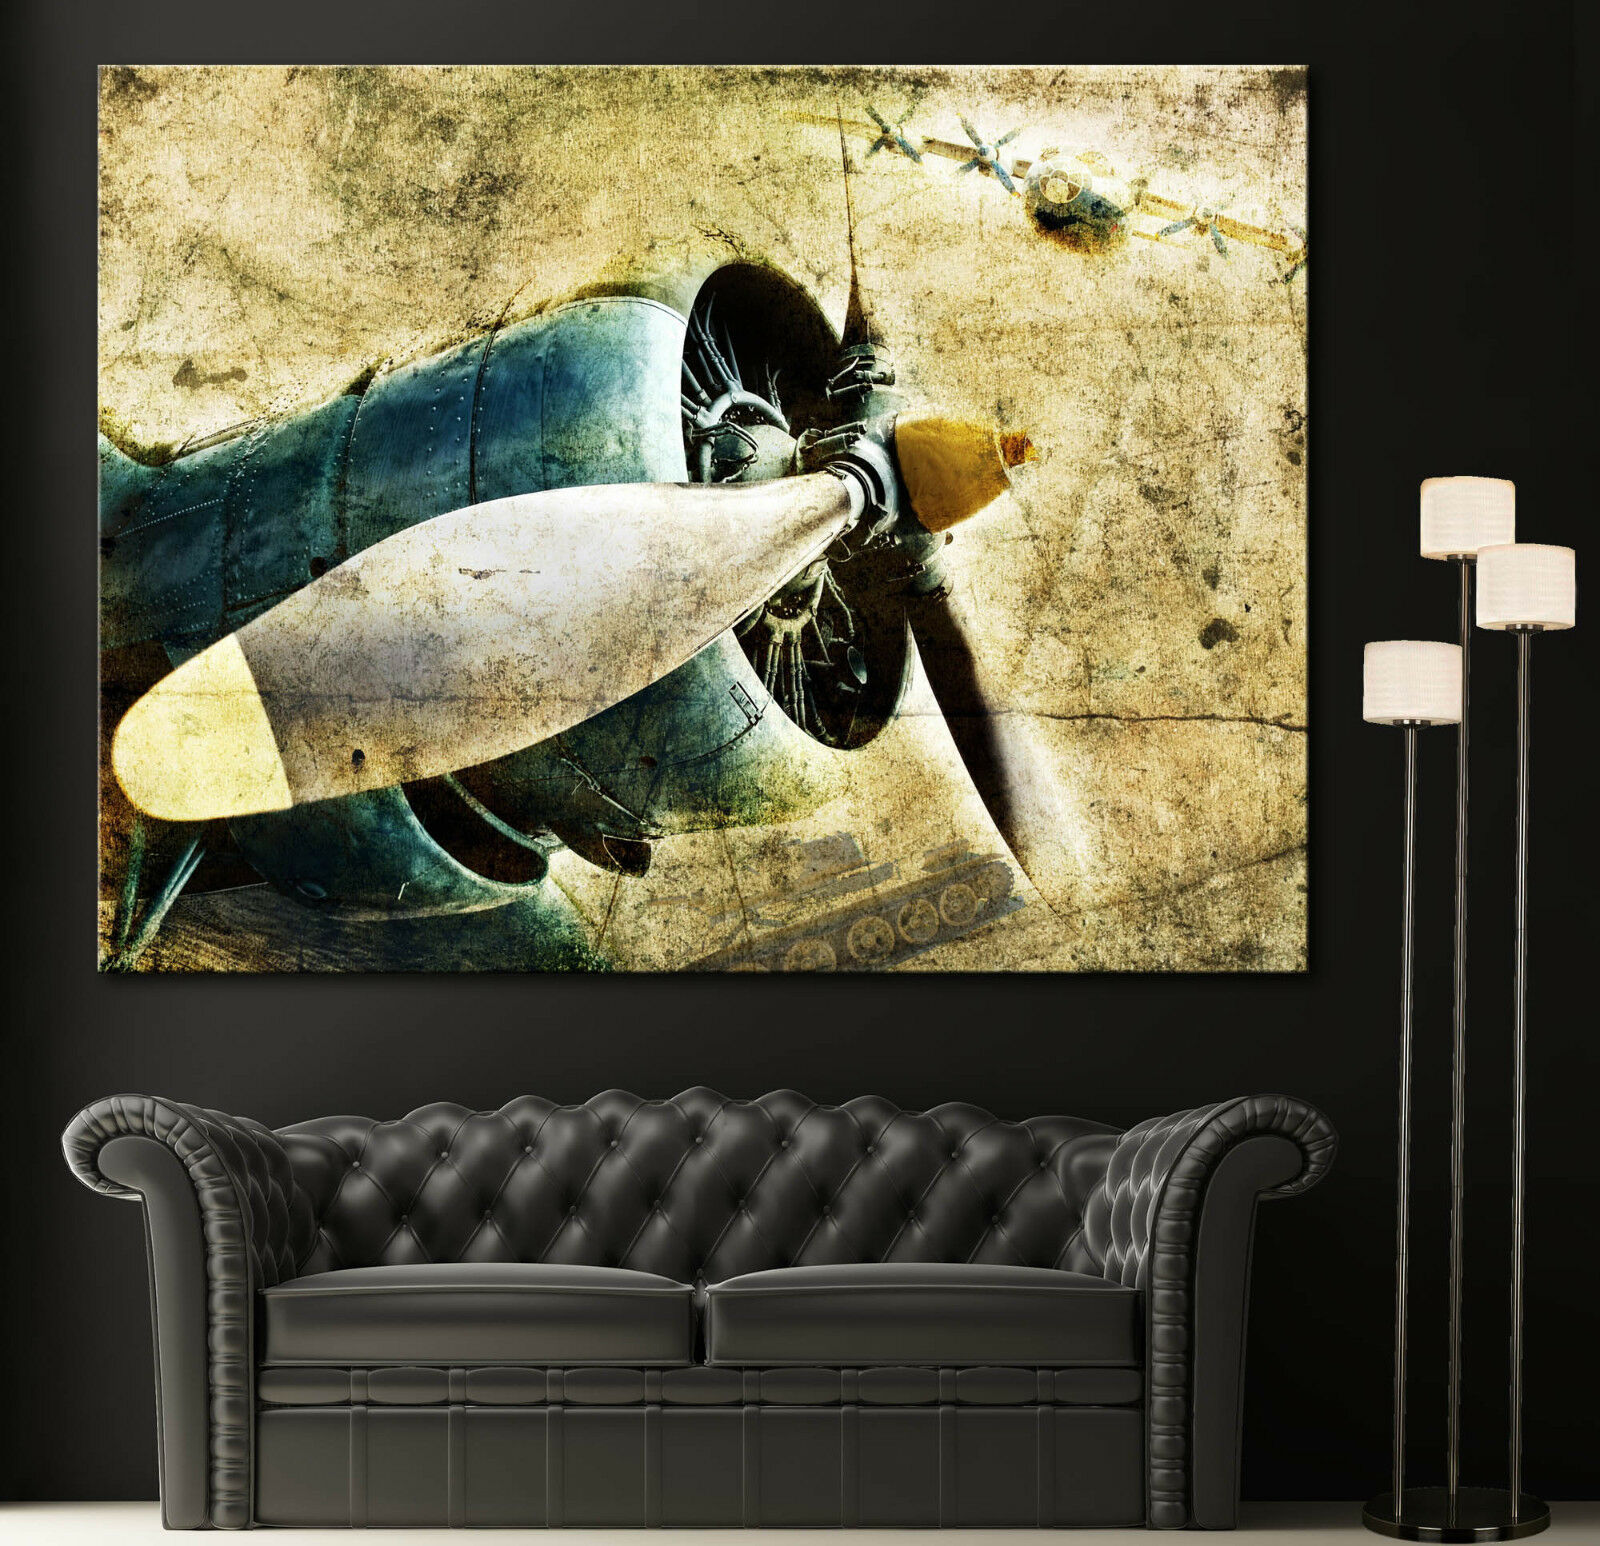 Home Wall Art Propeller Airplane Engine Canvas Print Picture Propellers Prints 1